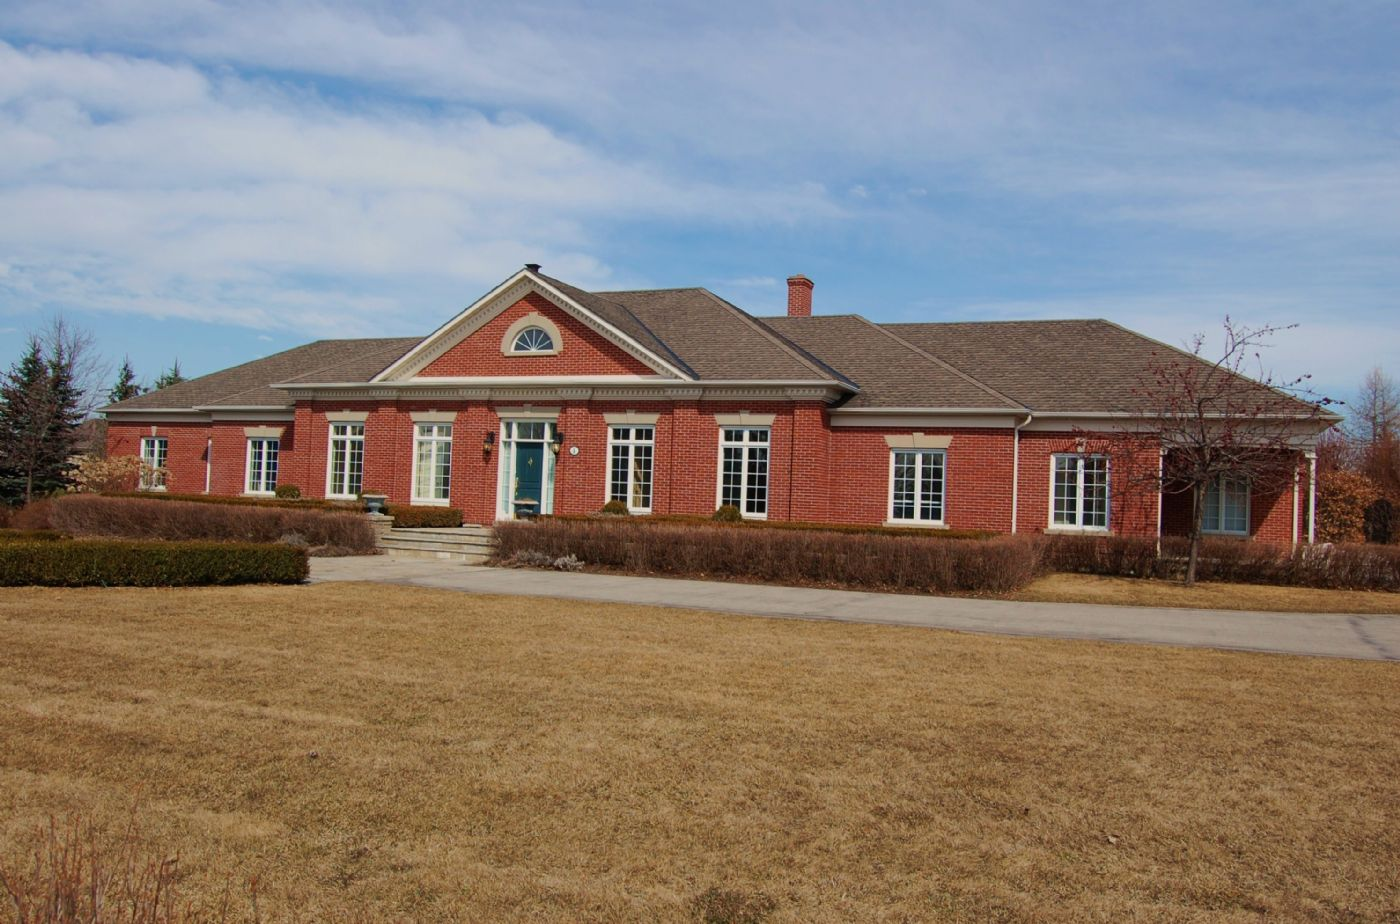 Fairfield king equestrian properties real estate for sale for Fairfield house